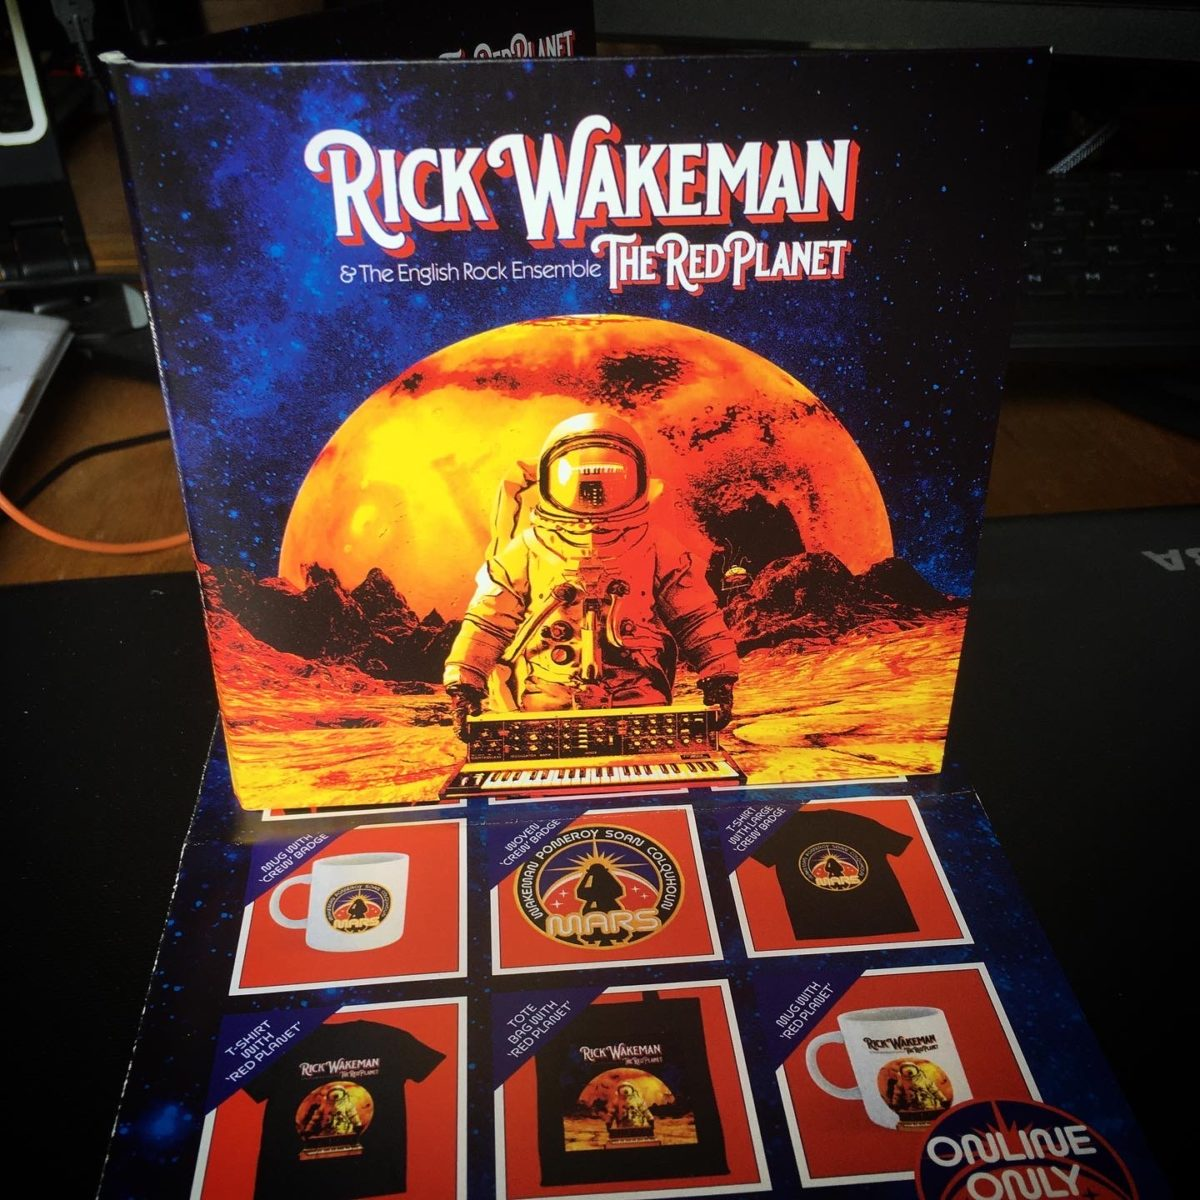 The Red Planet CD packaging